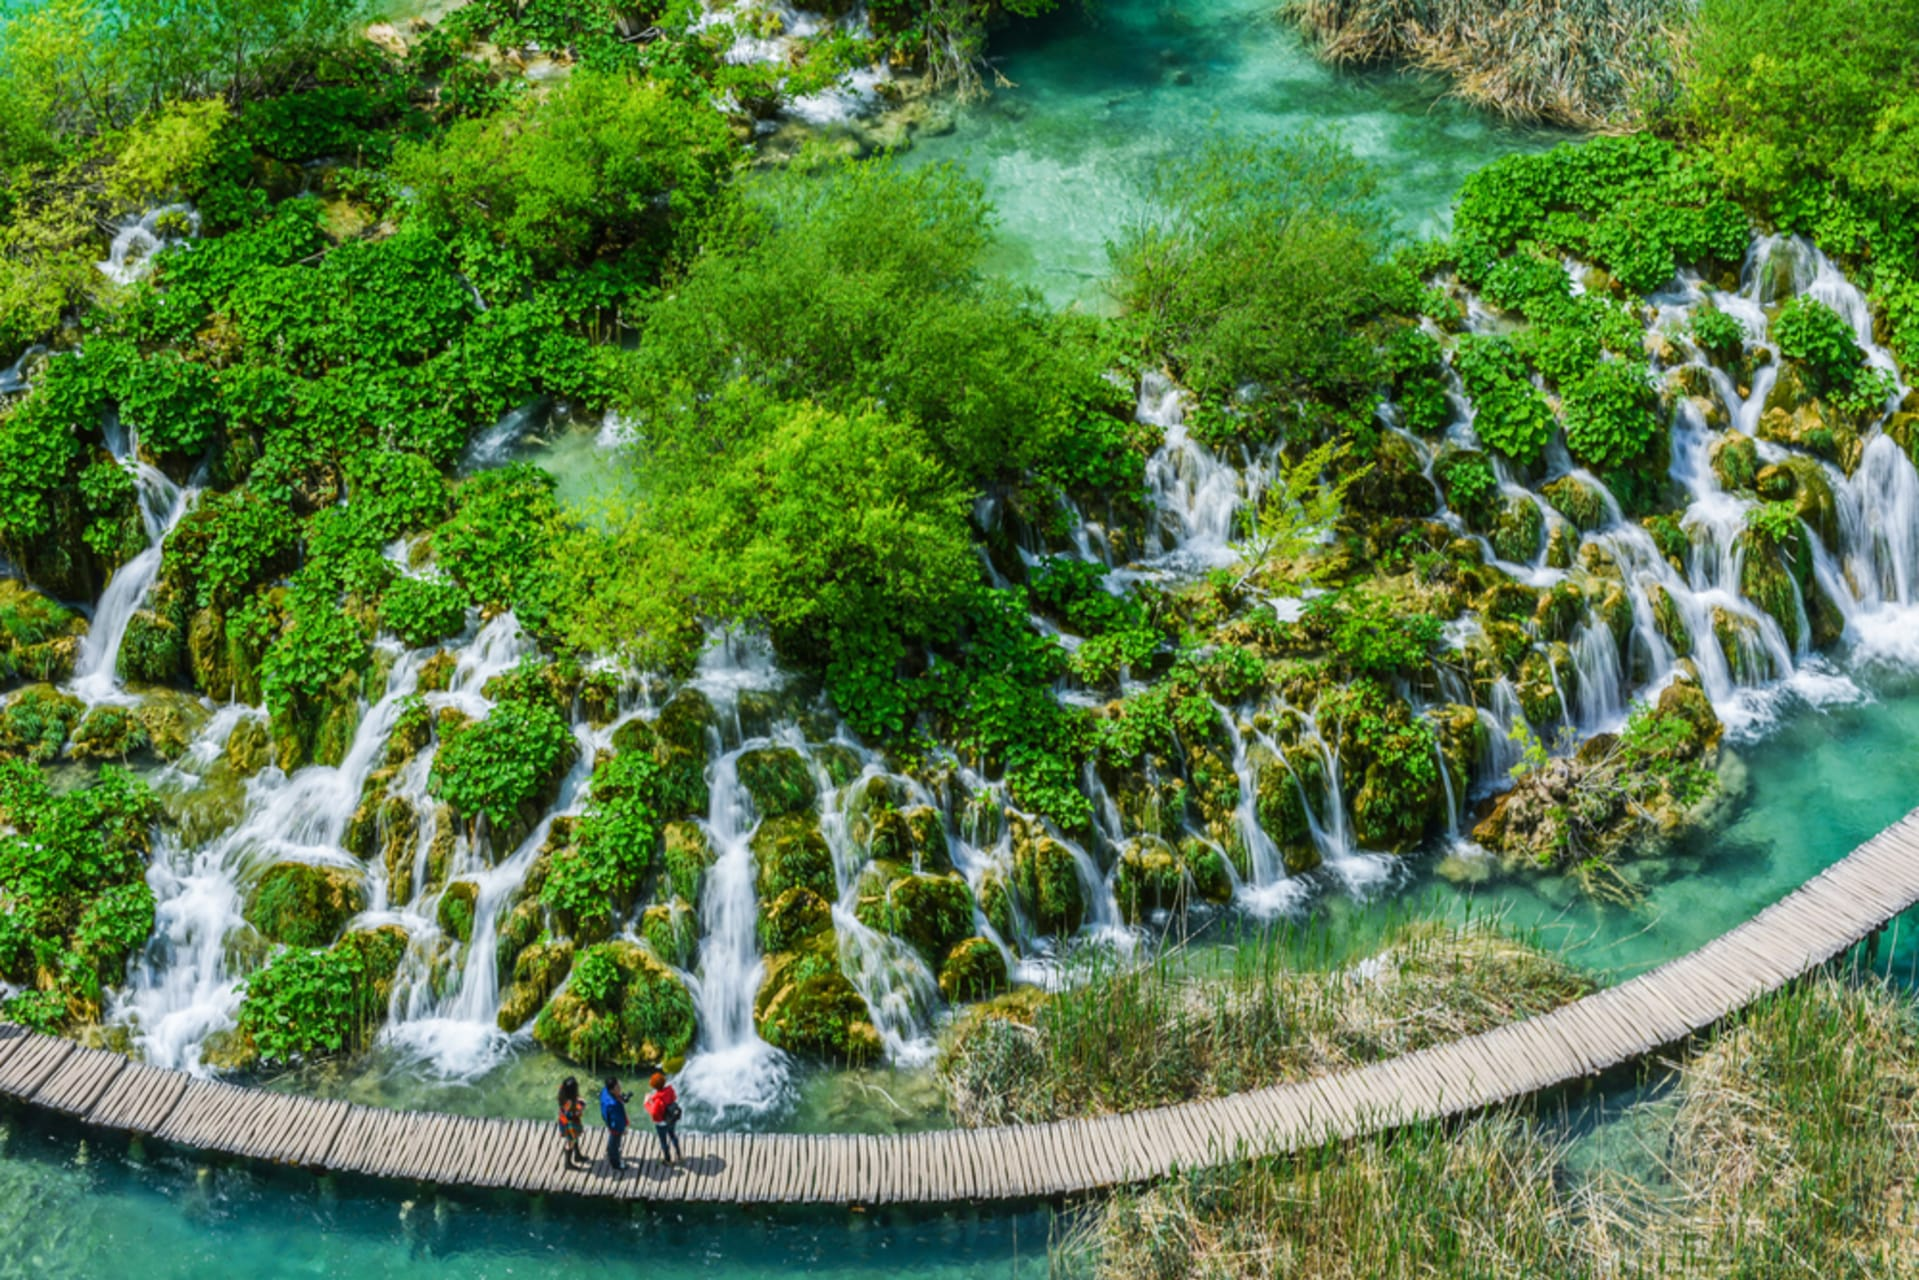 Plitvice Lakes National Park - Plitvice Lakes – The Magic of Water